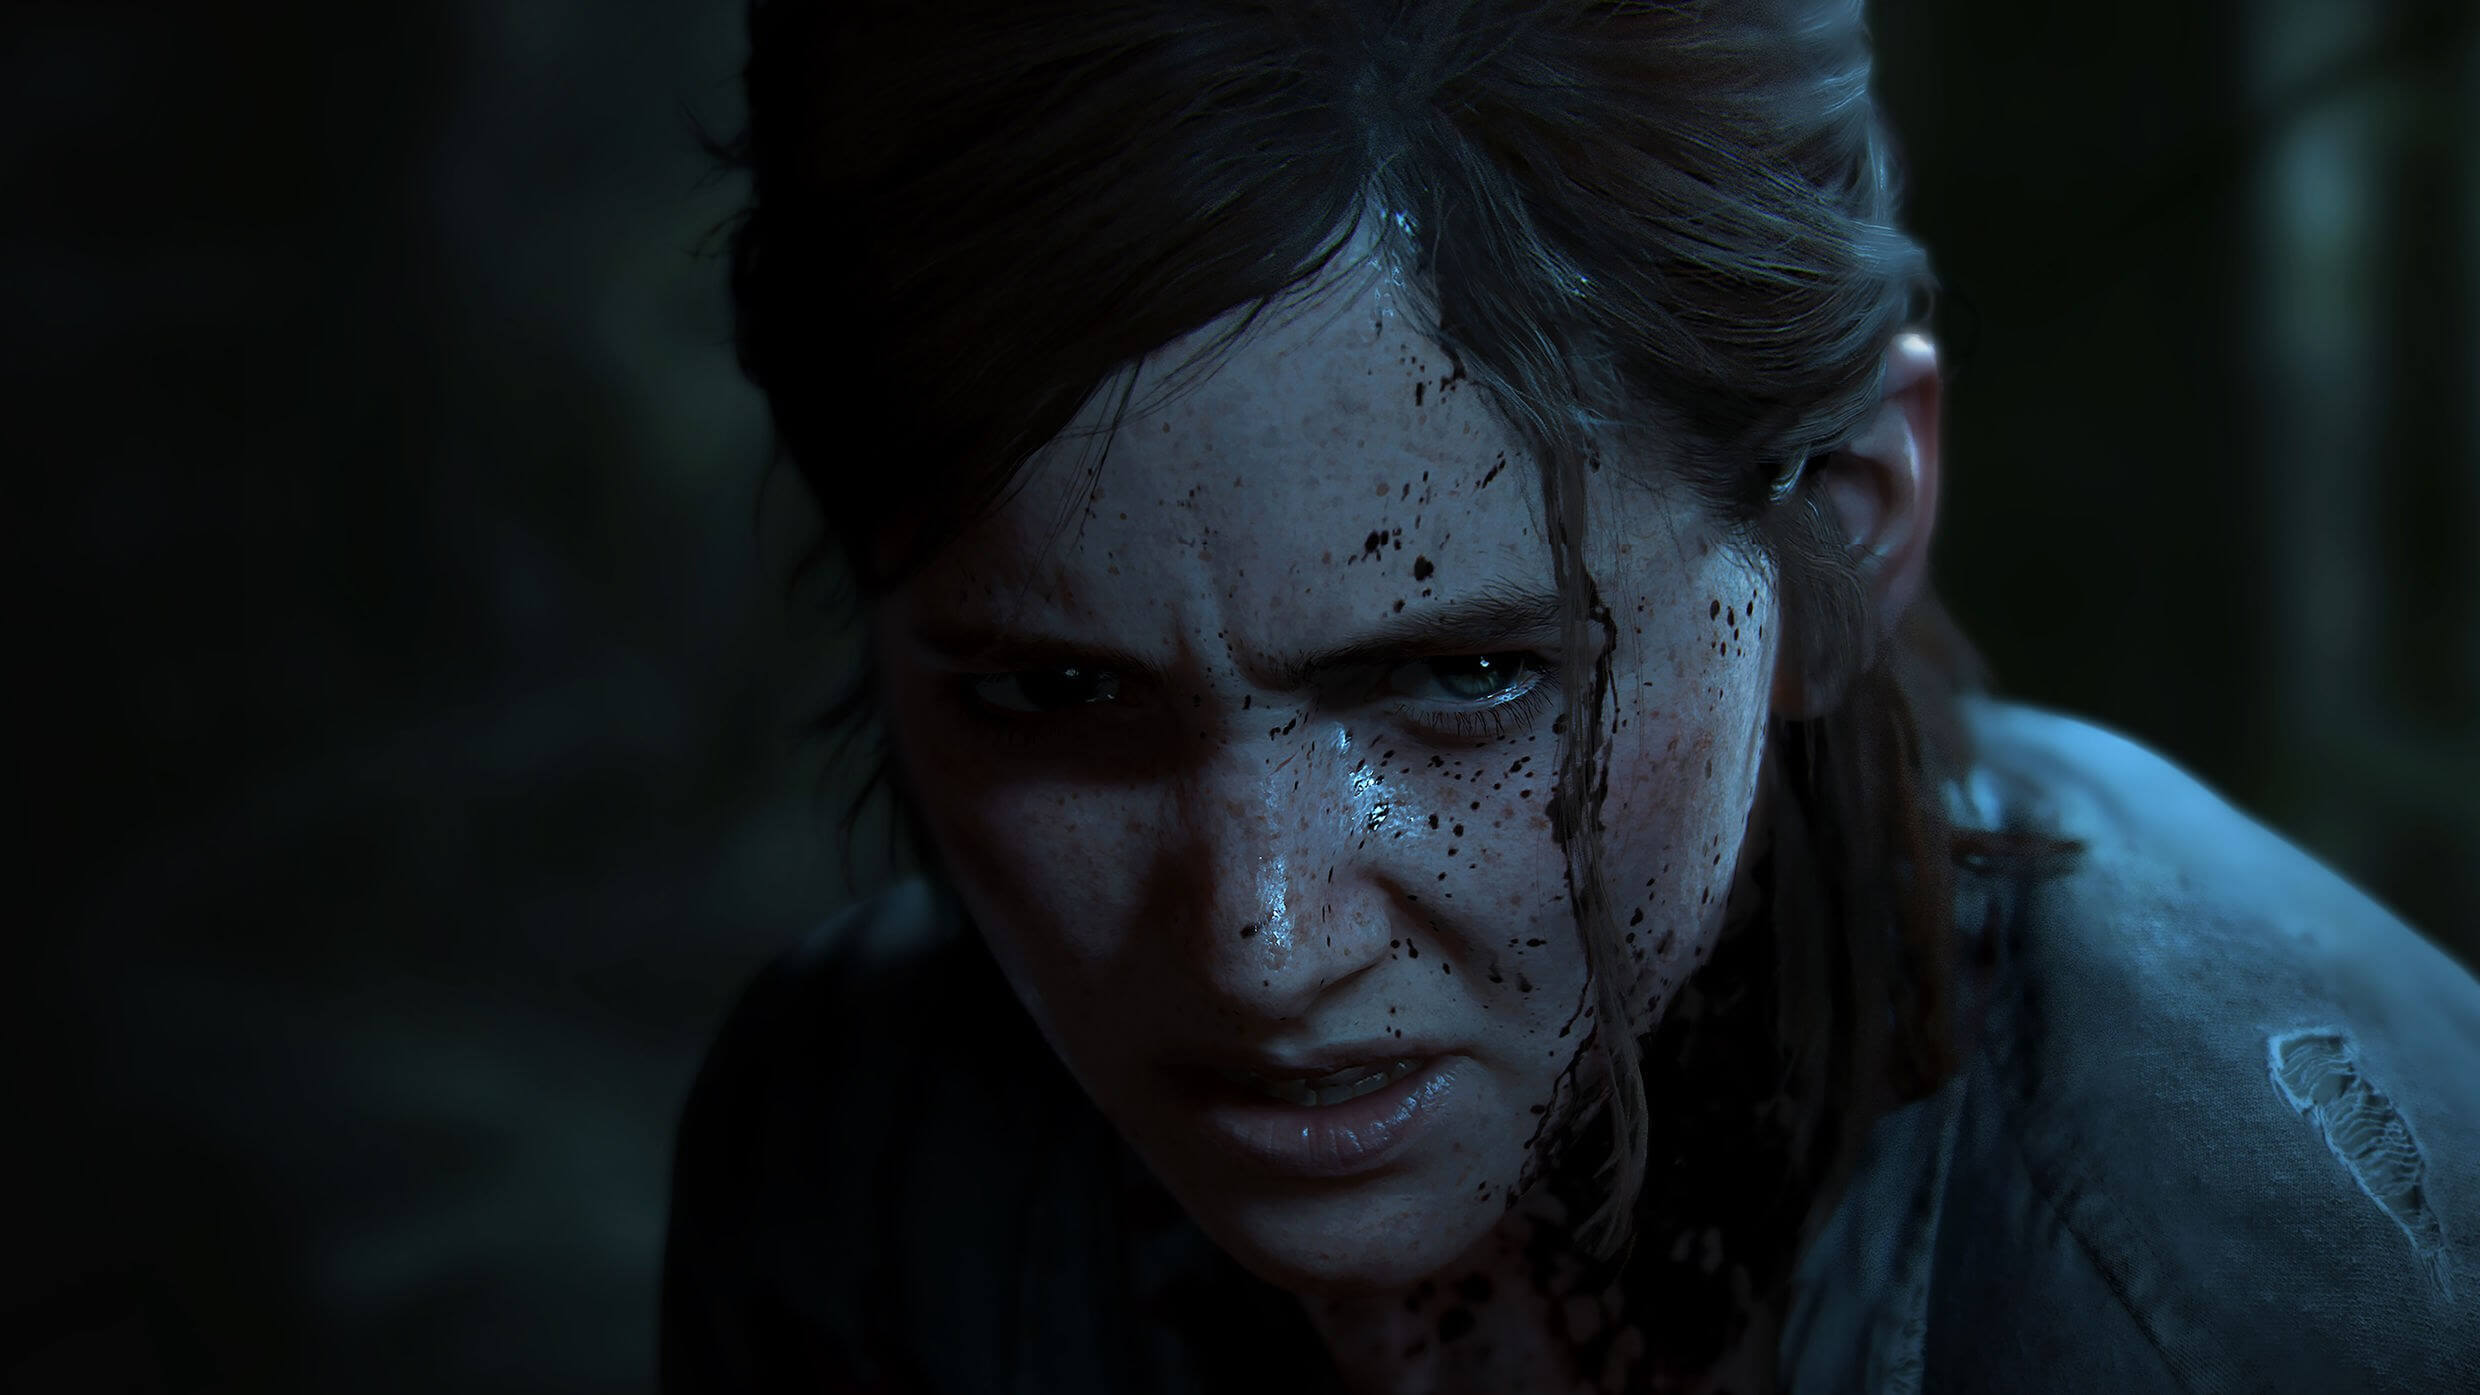 Patch vulnerability reportedly led to The Last of Us Part II leak